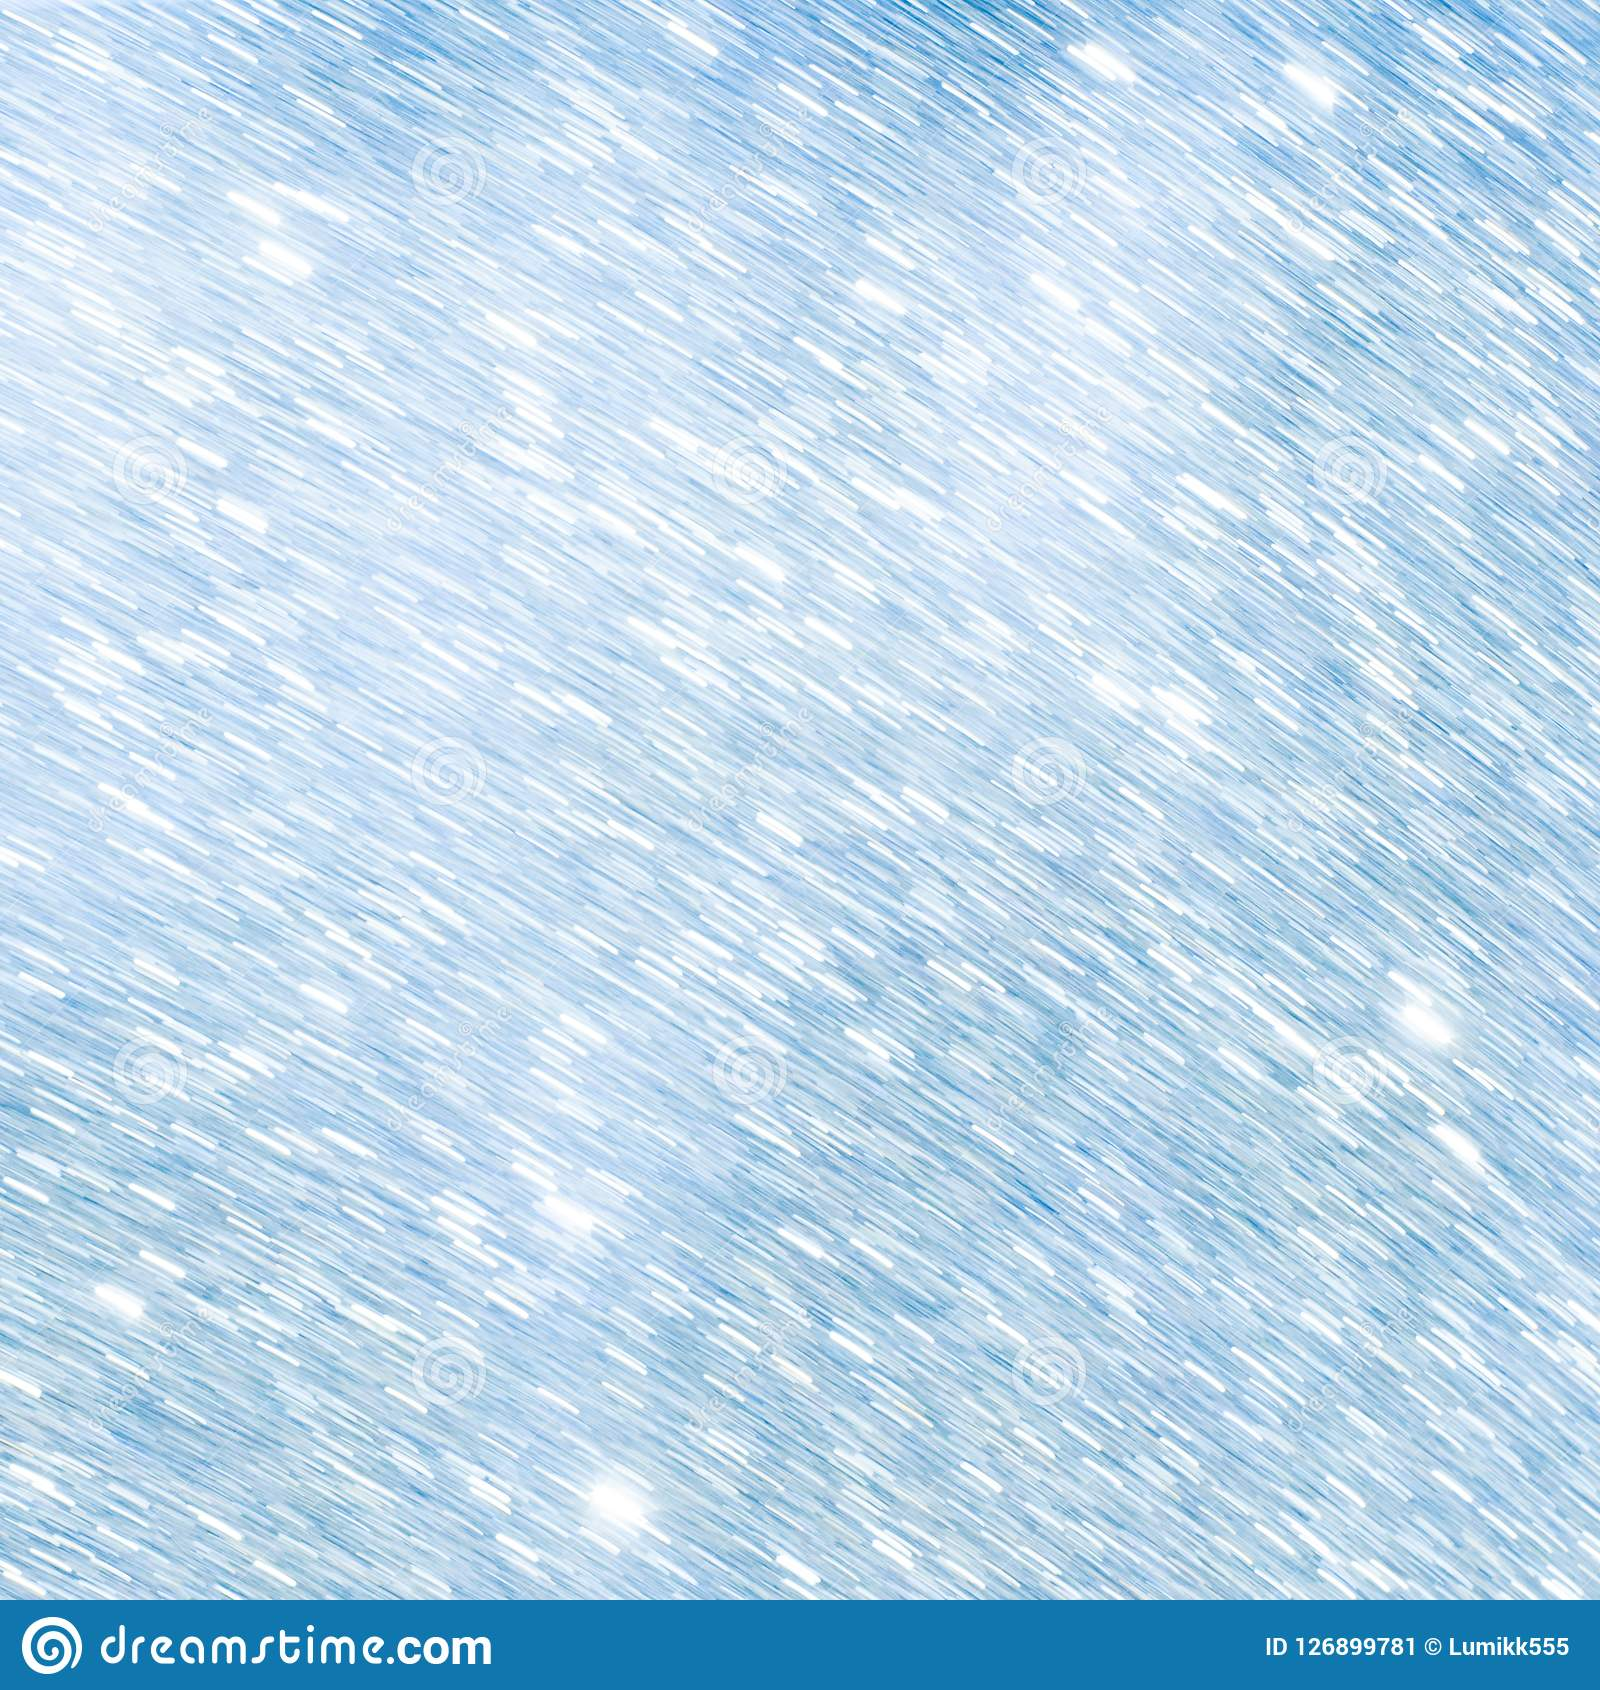 Beautiful Abstract Light Blue And White Winter Background